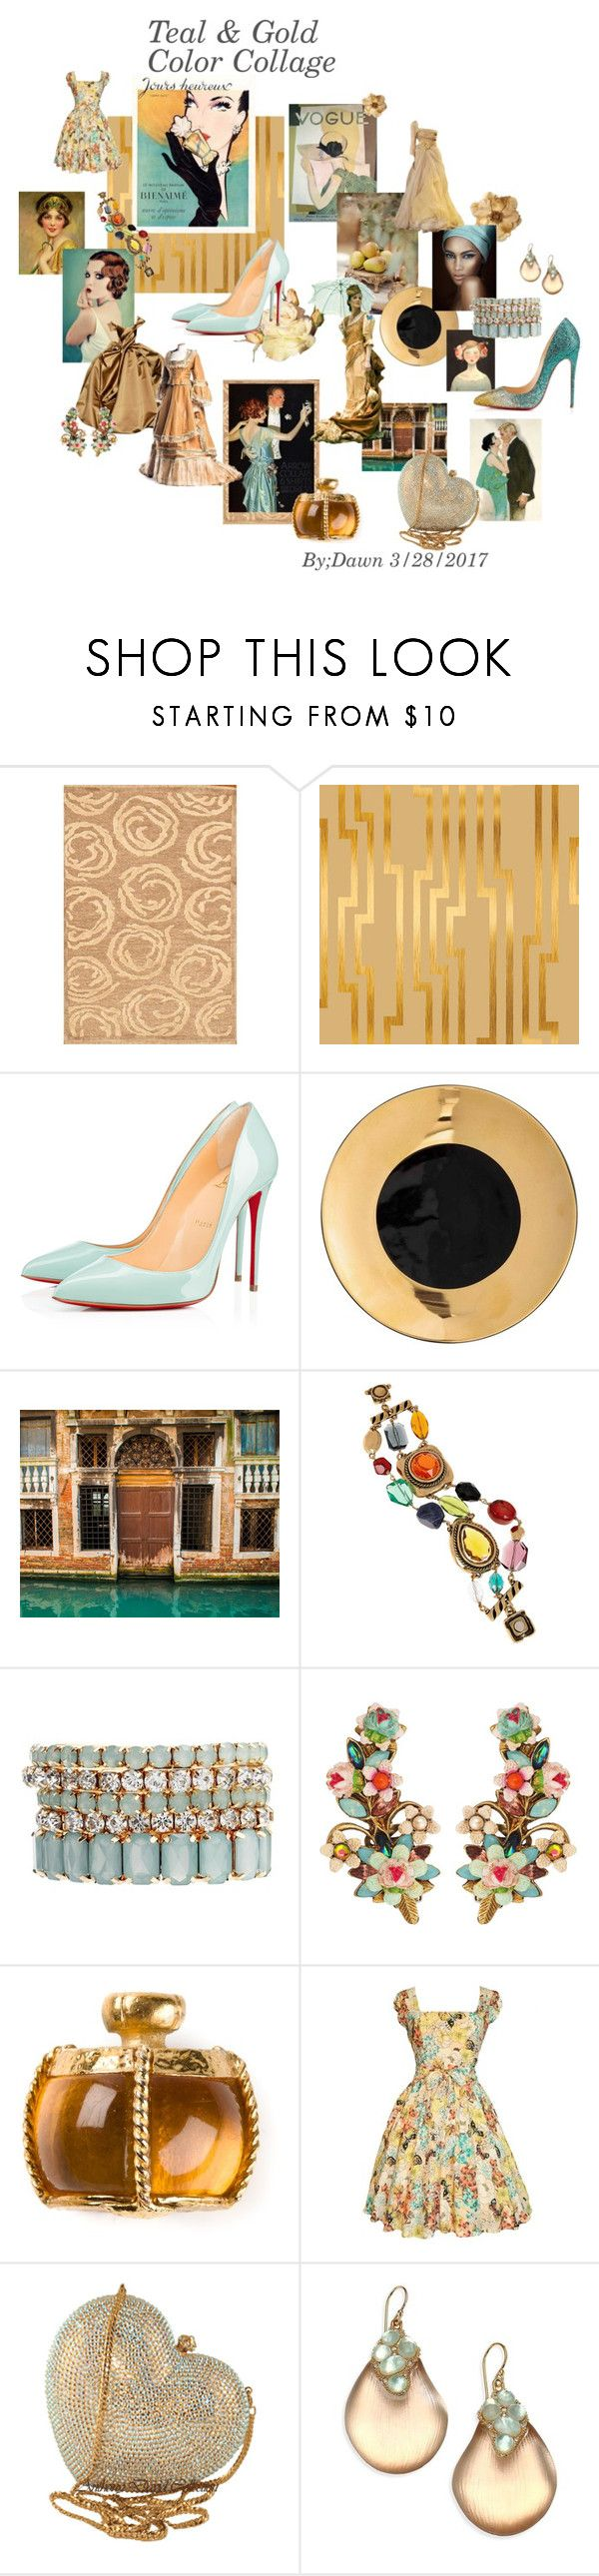 """COLOR COLLAGE"" by dawn-lindenberg ❤ liked on Polyvore featuring Christian Louboutin, Clips, Leyendecker, WALL, Oscar de la Renta, Johnny Loves Rosie, Michal Negrin, Yves Saint Laurent, Swarovski and Alexis Bittar"